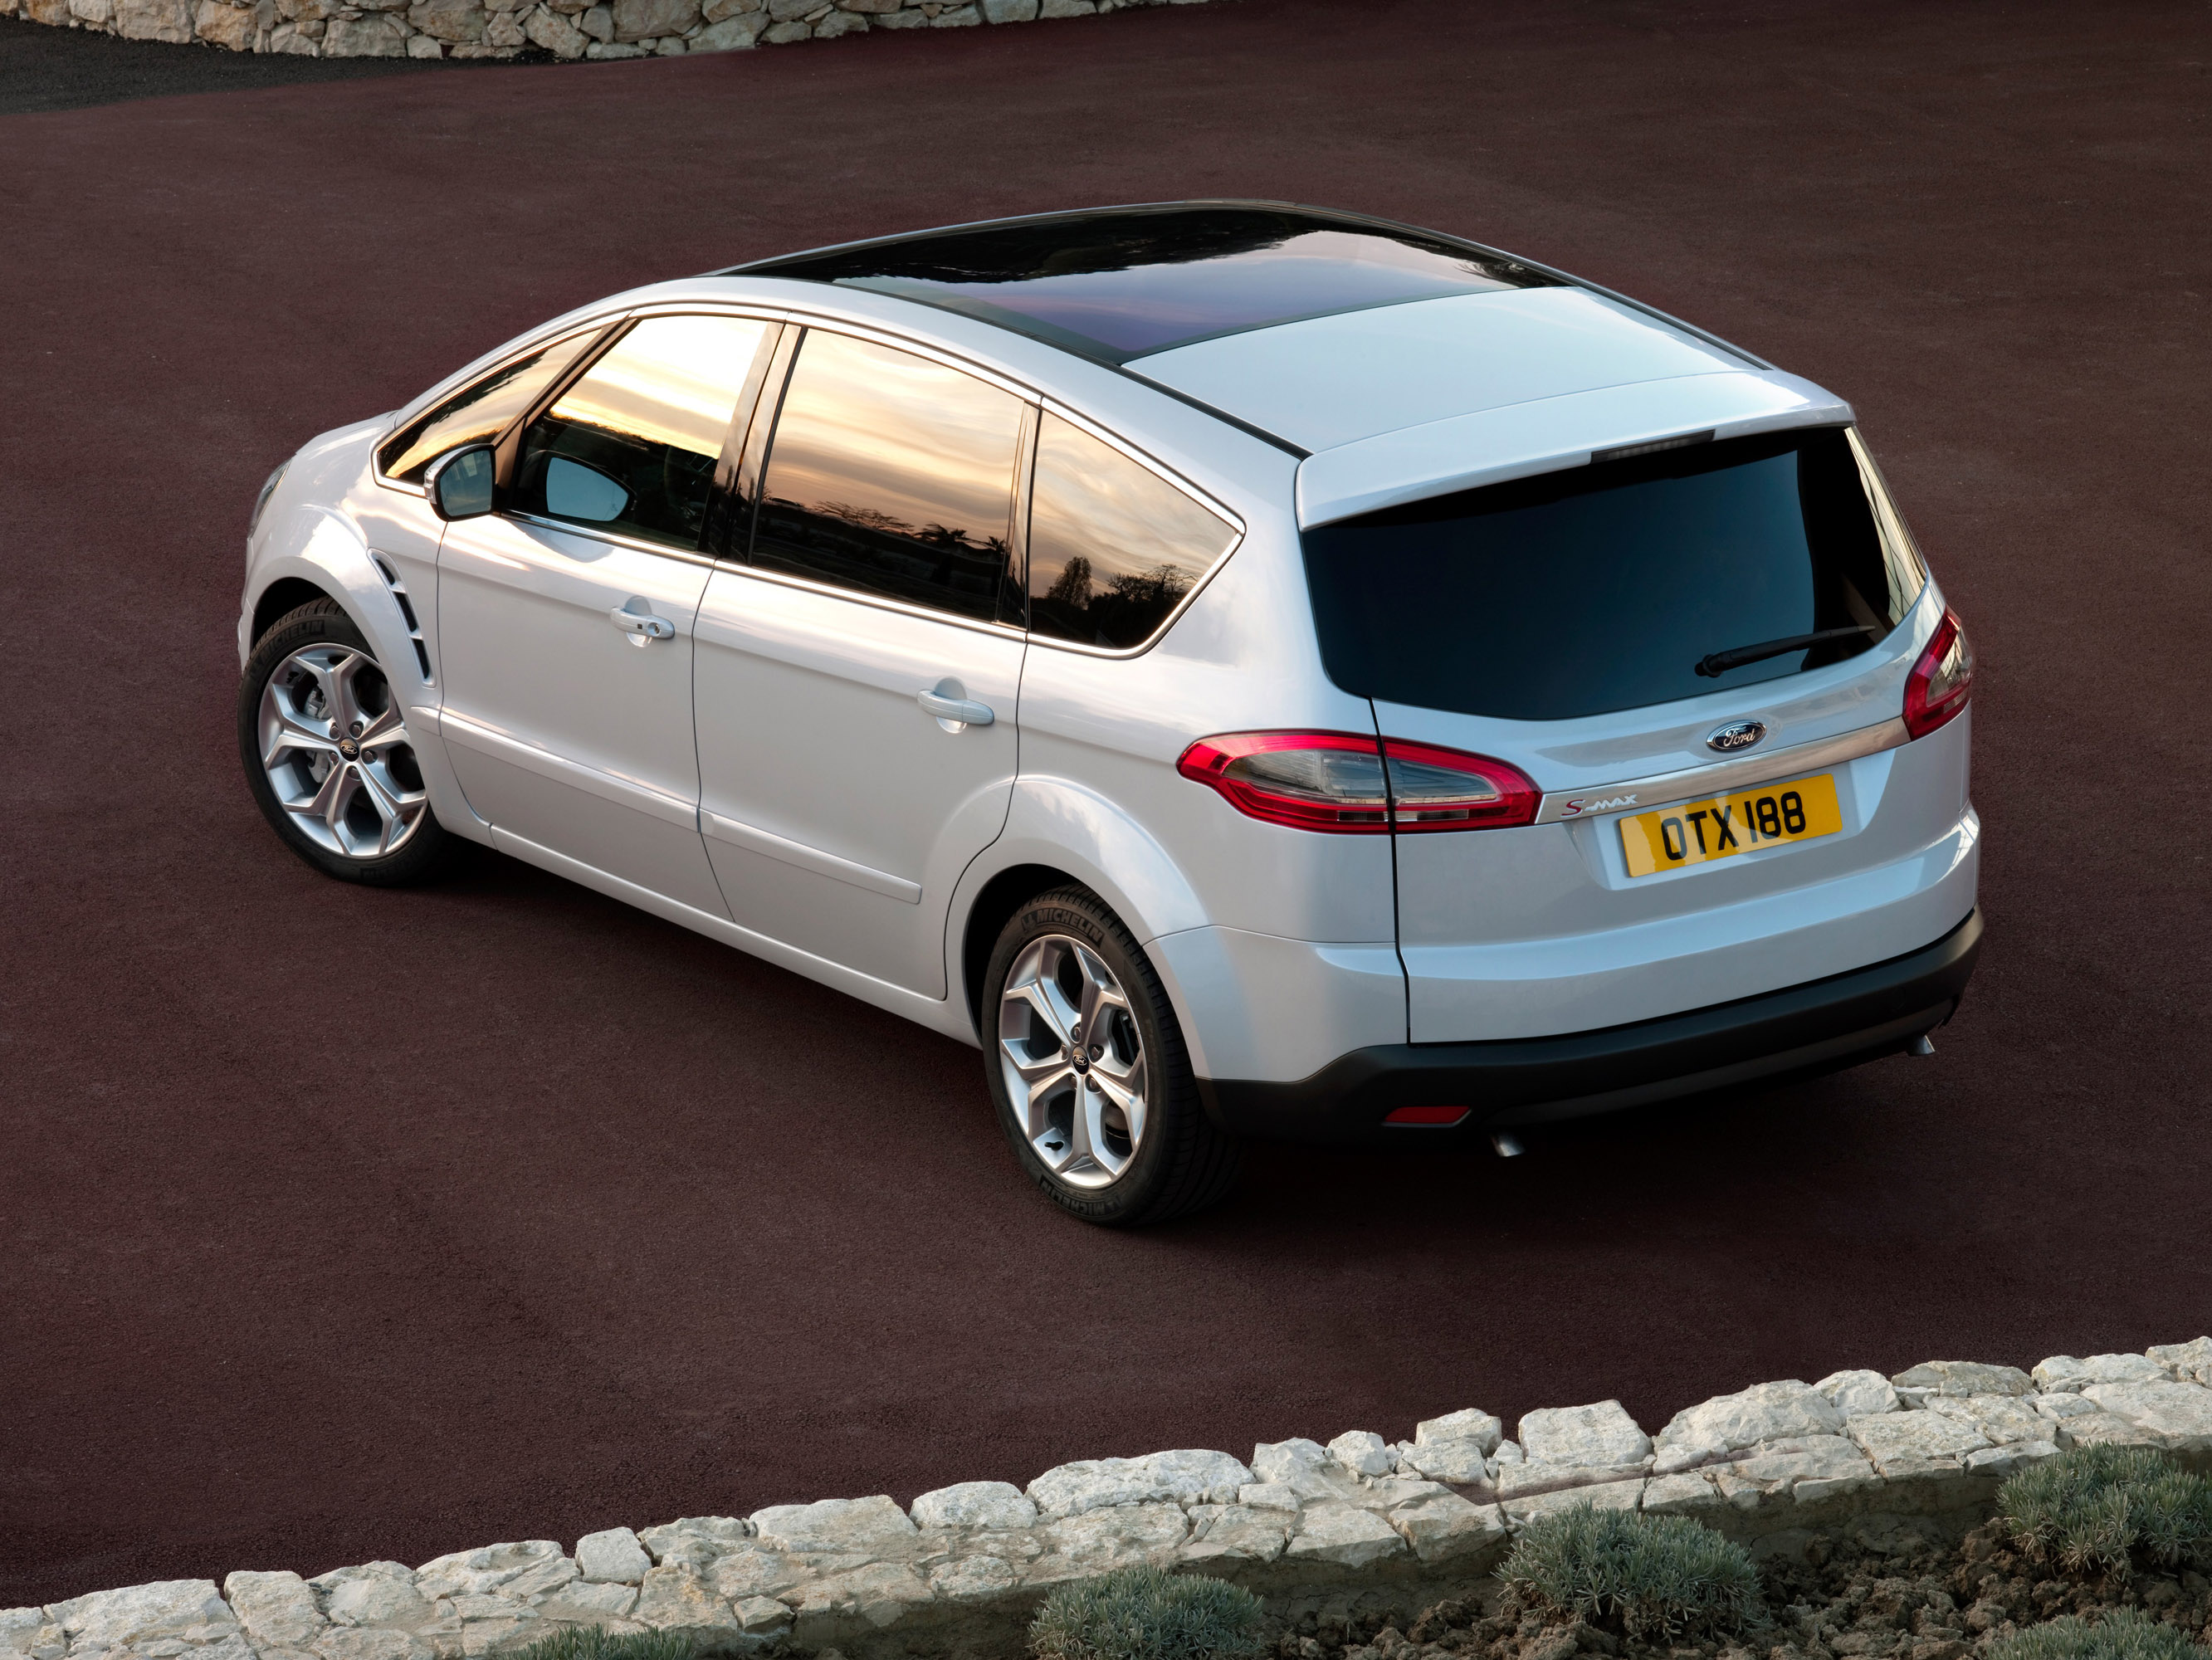 2010 Brussels Motor Show Debut For New Ford S-Max And New ...